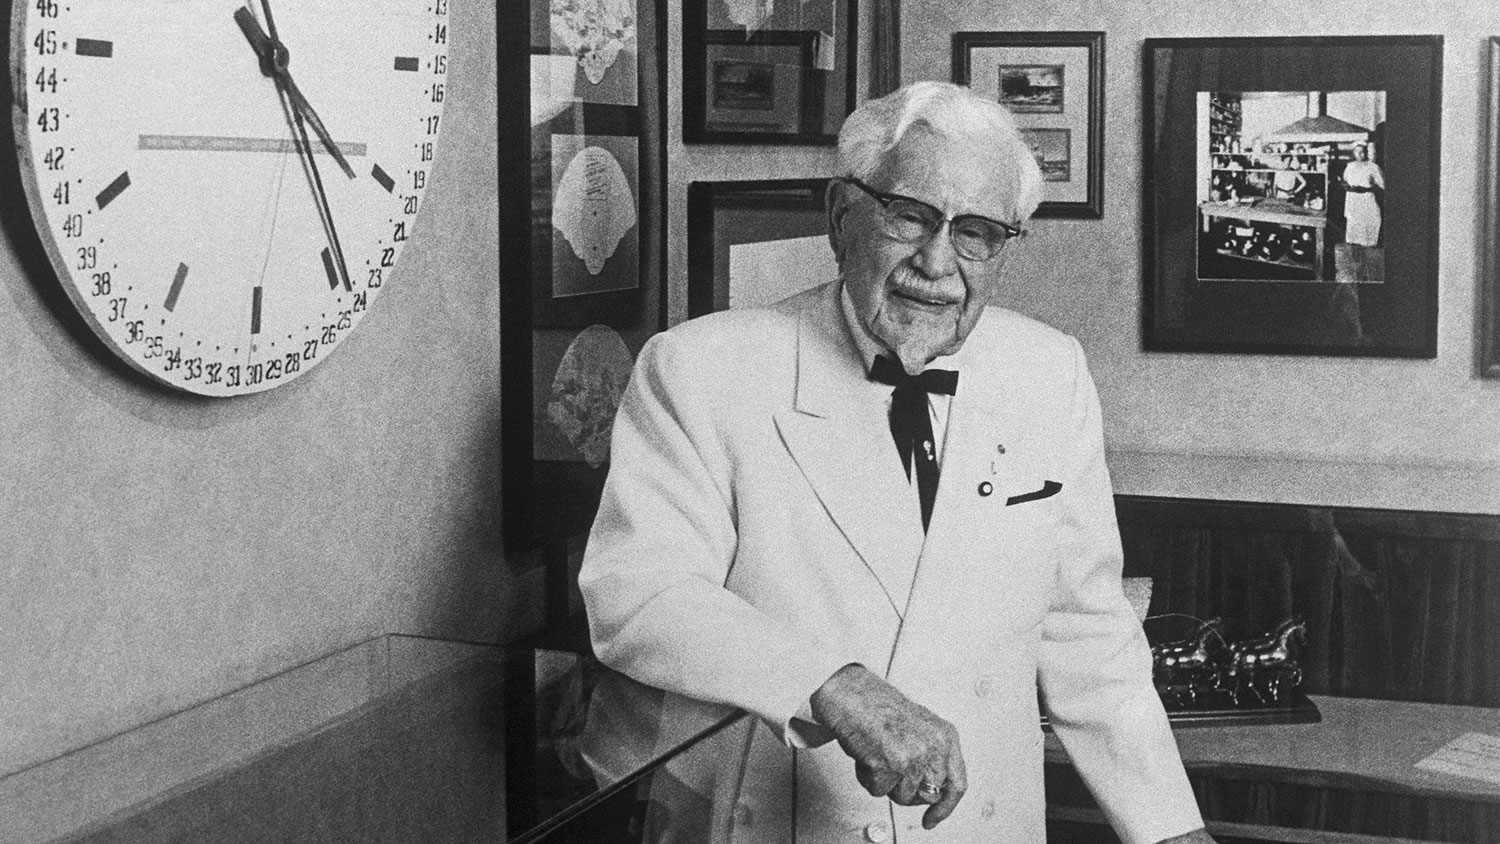 kfc brings back the original colonel sanders